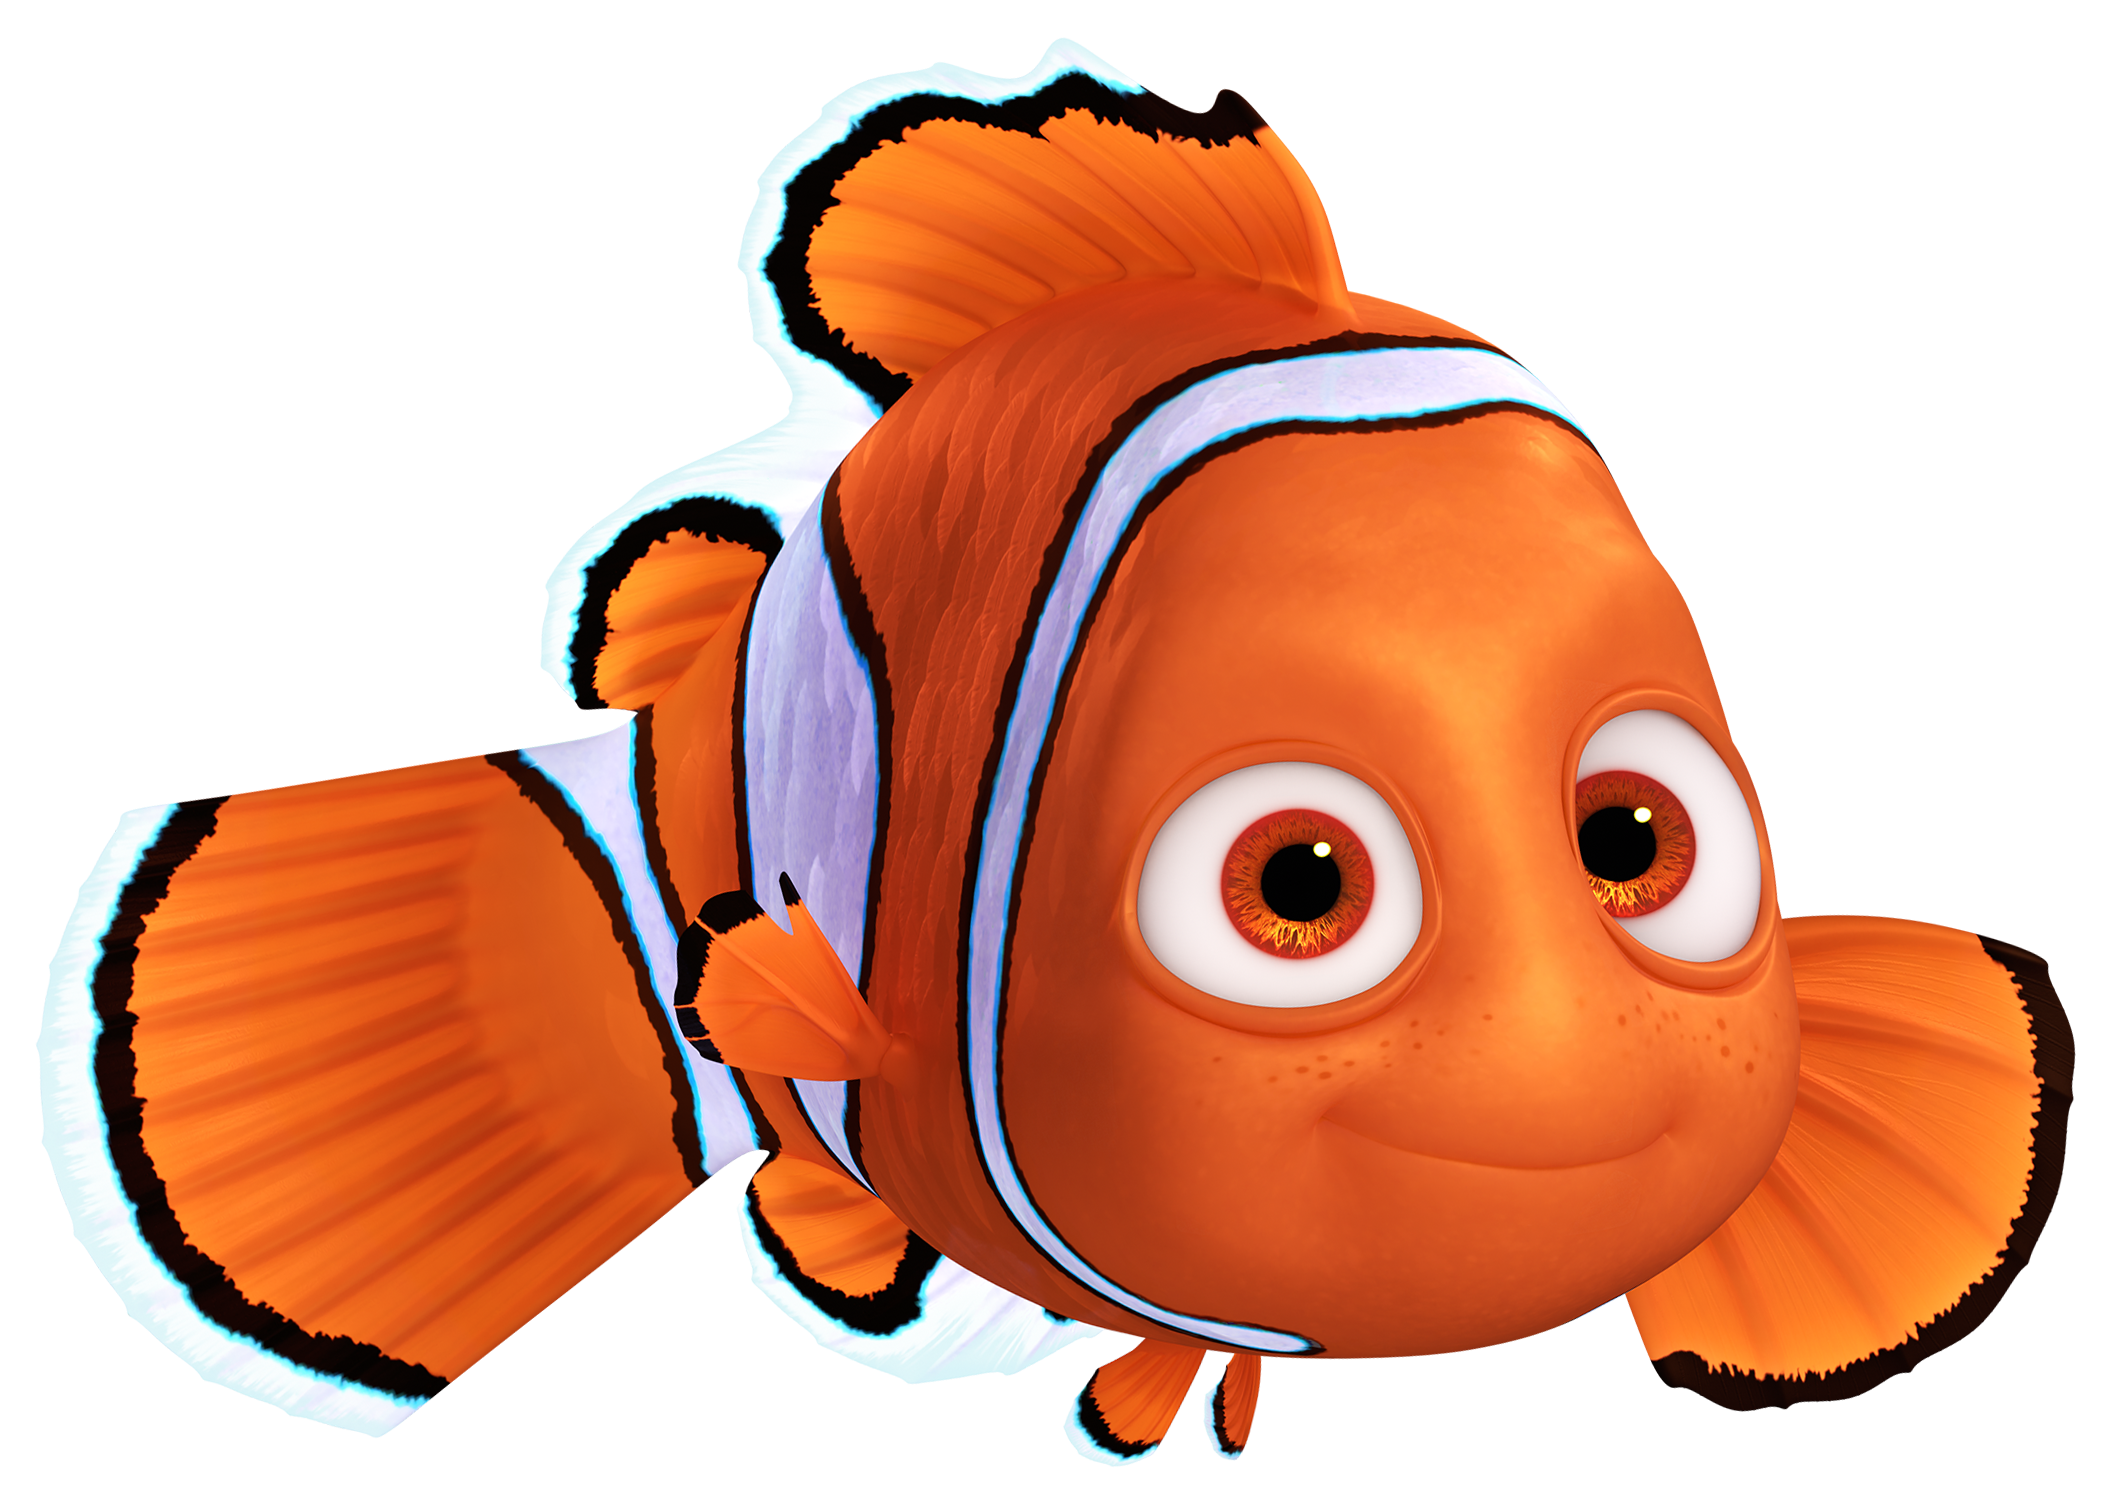 Image - Nemo FD render.png | Disney Wiki | FANDOM powered by Wikia